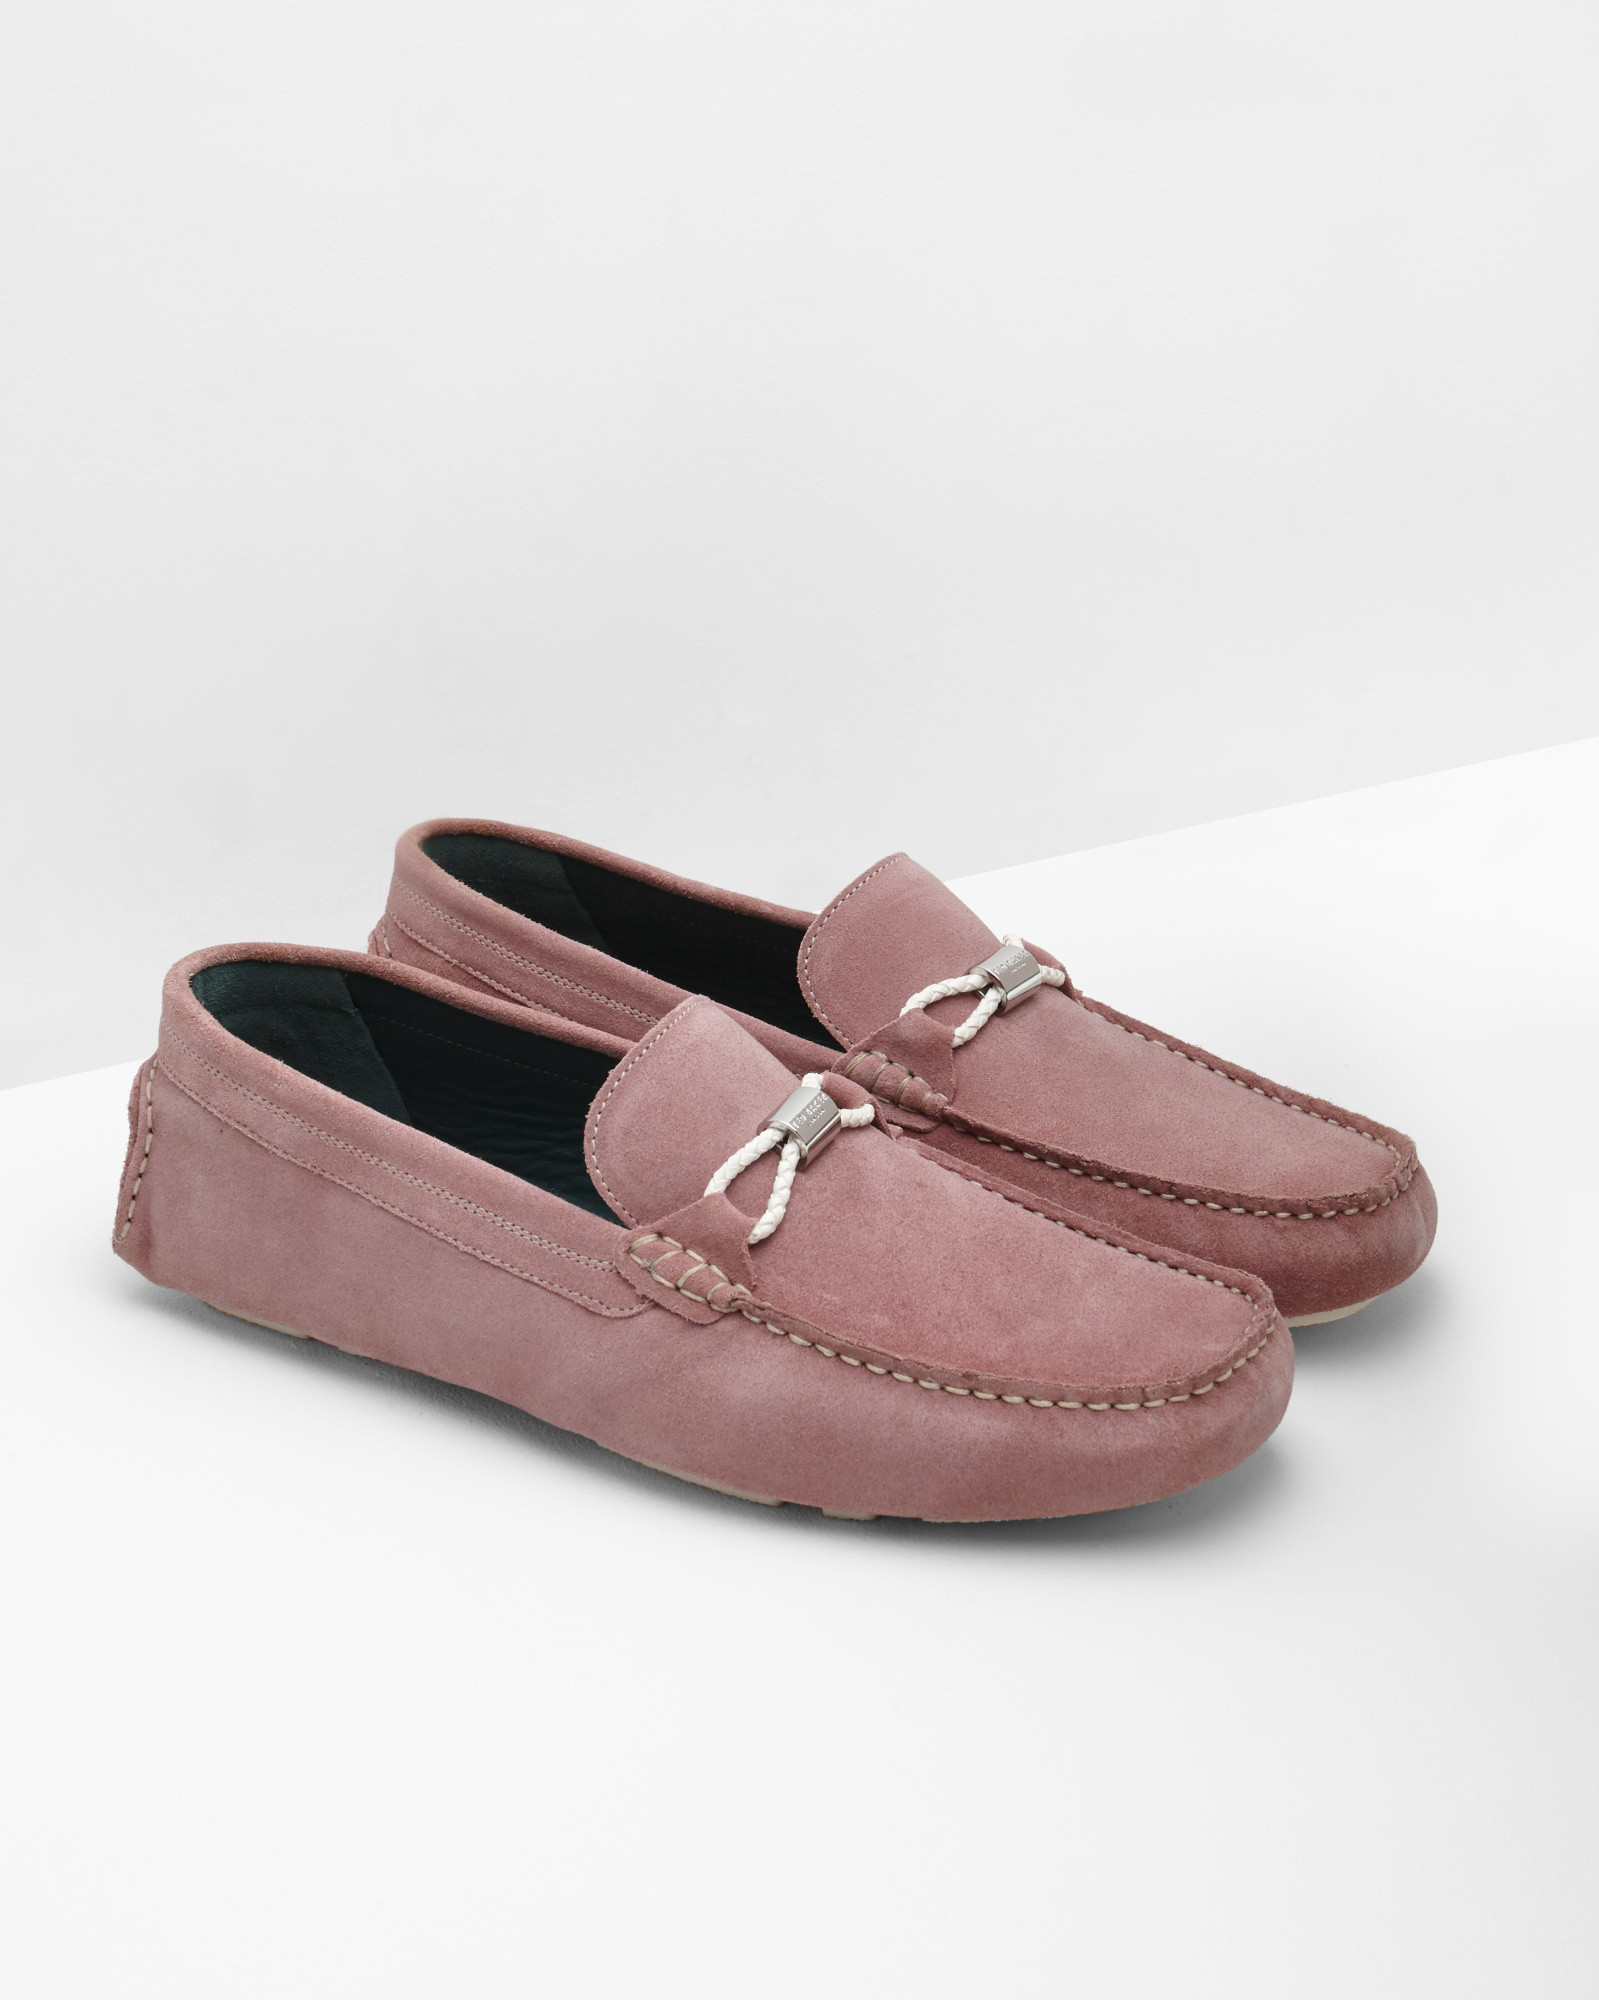 Cloth Loafers For Men